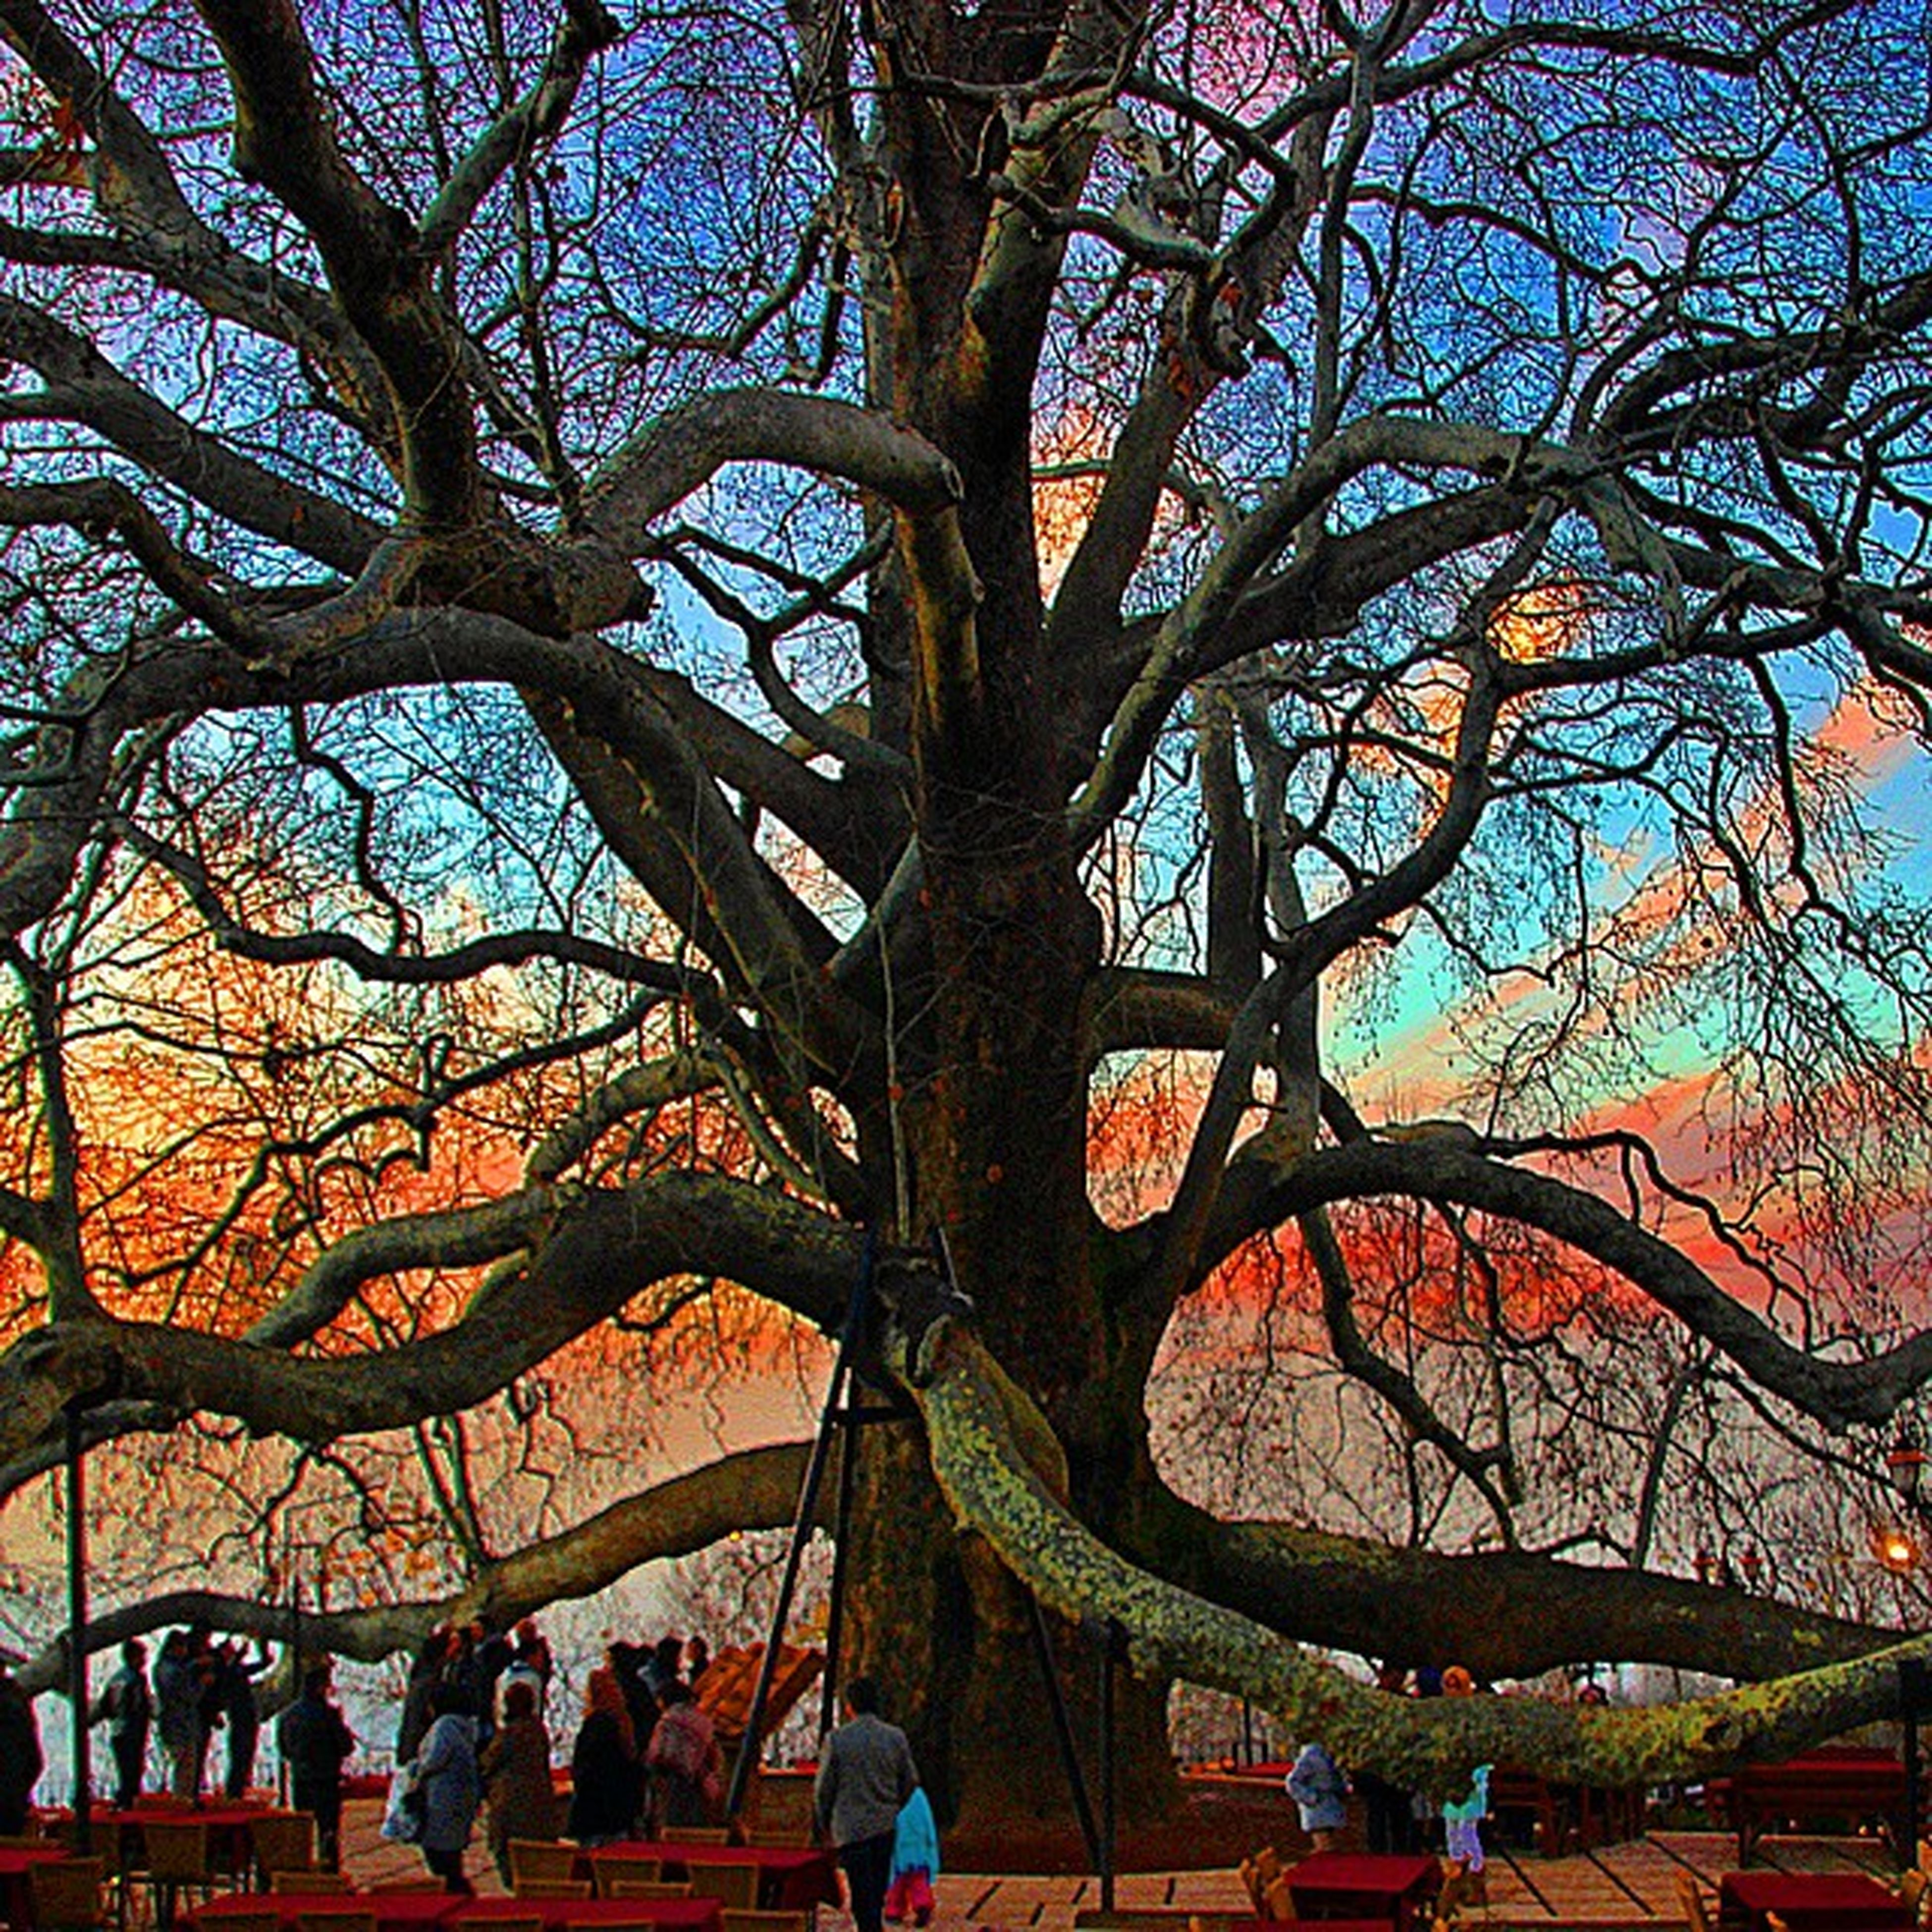 tree, large group of people, lifestyles, bare tree, leisure activity, person, men, branch, sky, park - man made space, built structure, architecture, outdoors, nature, tourism, low angle view, arts culture and entertainment, travel destinations, tourist